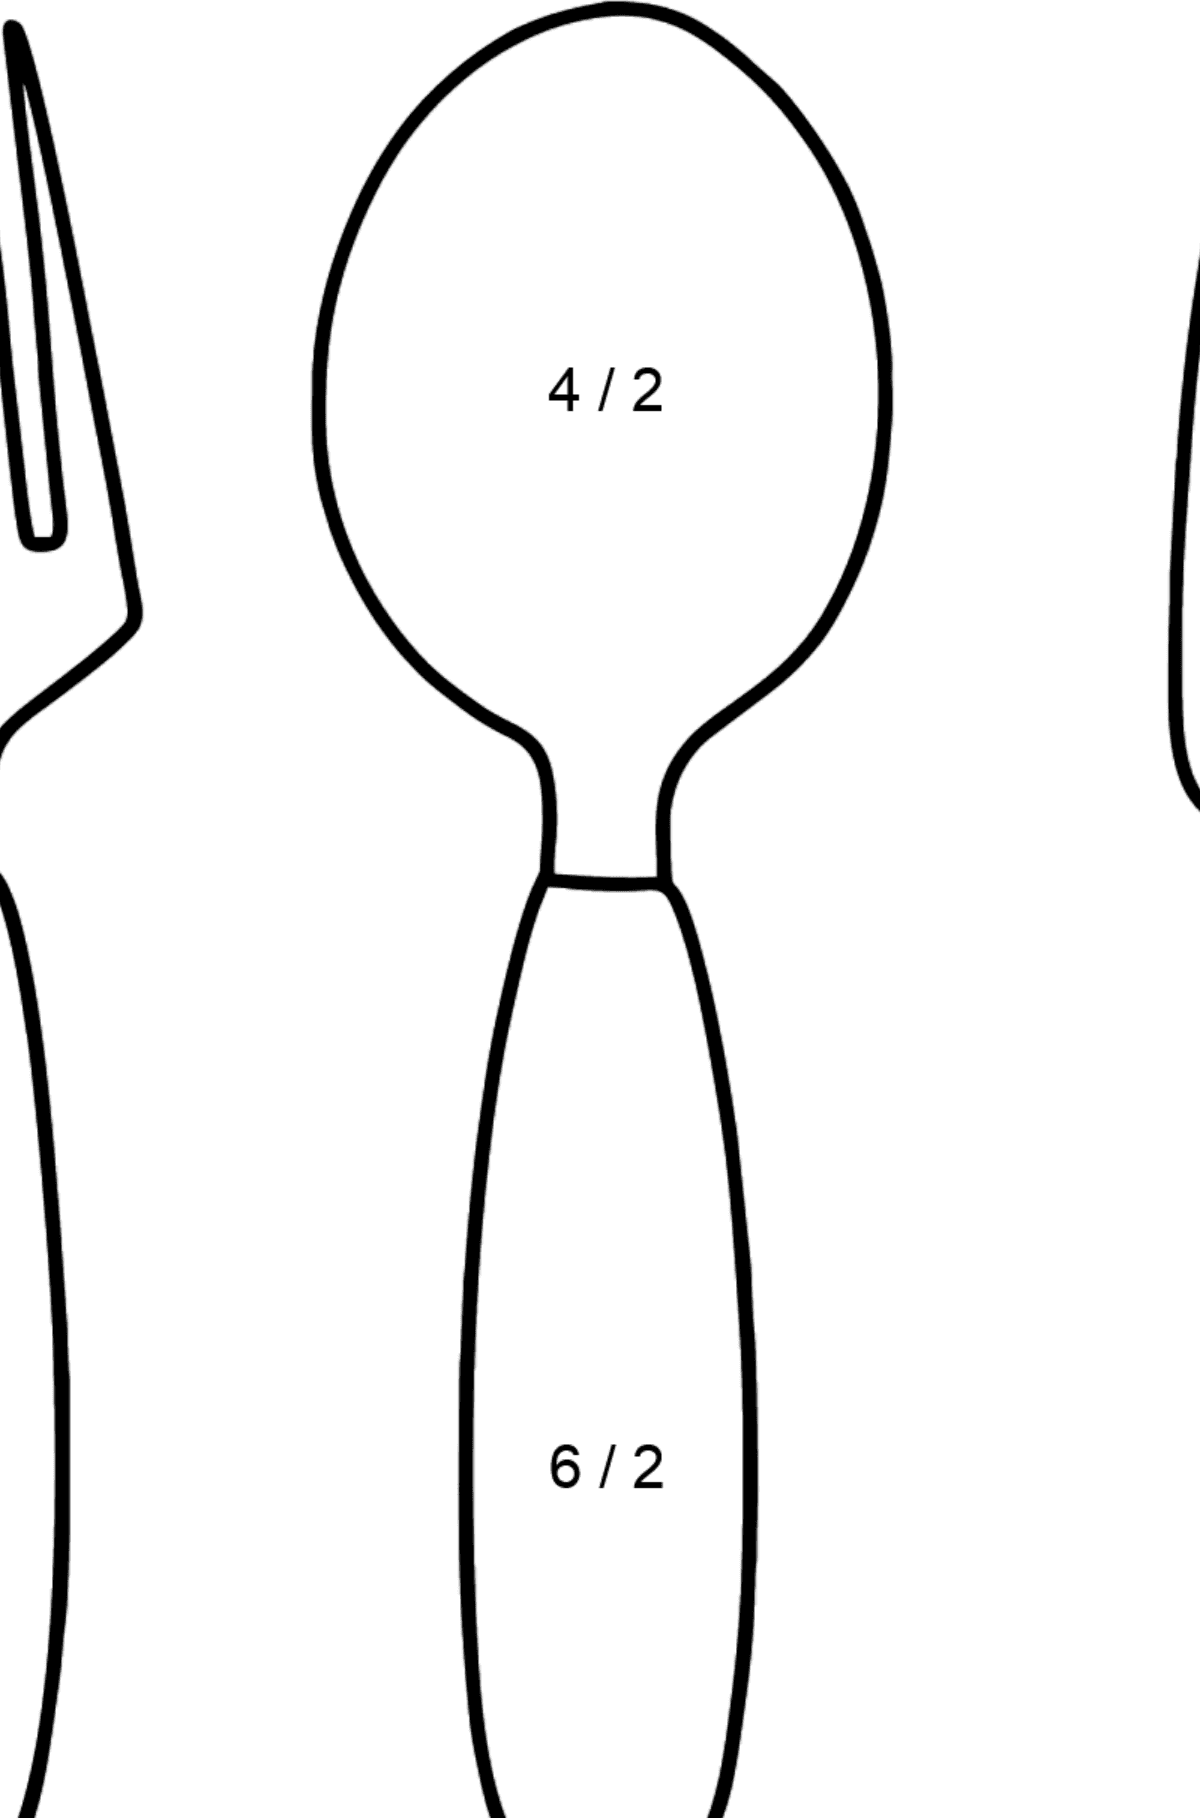 Cutlery coloring page - Math Coloring - Division for Kids